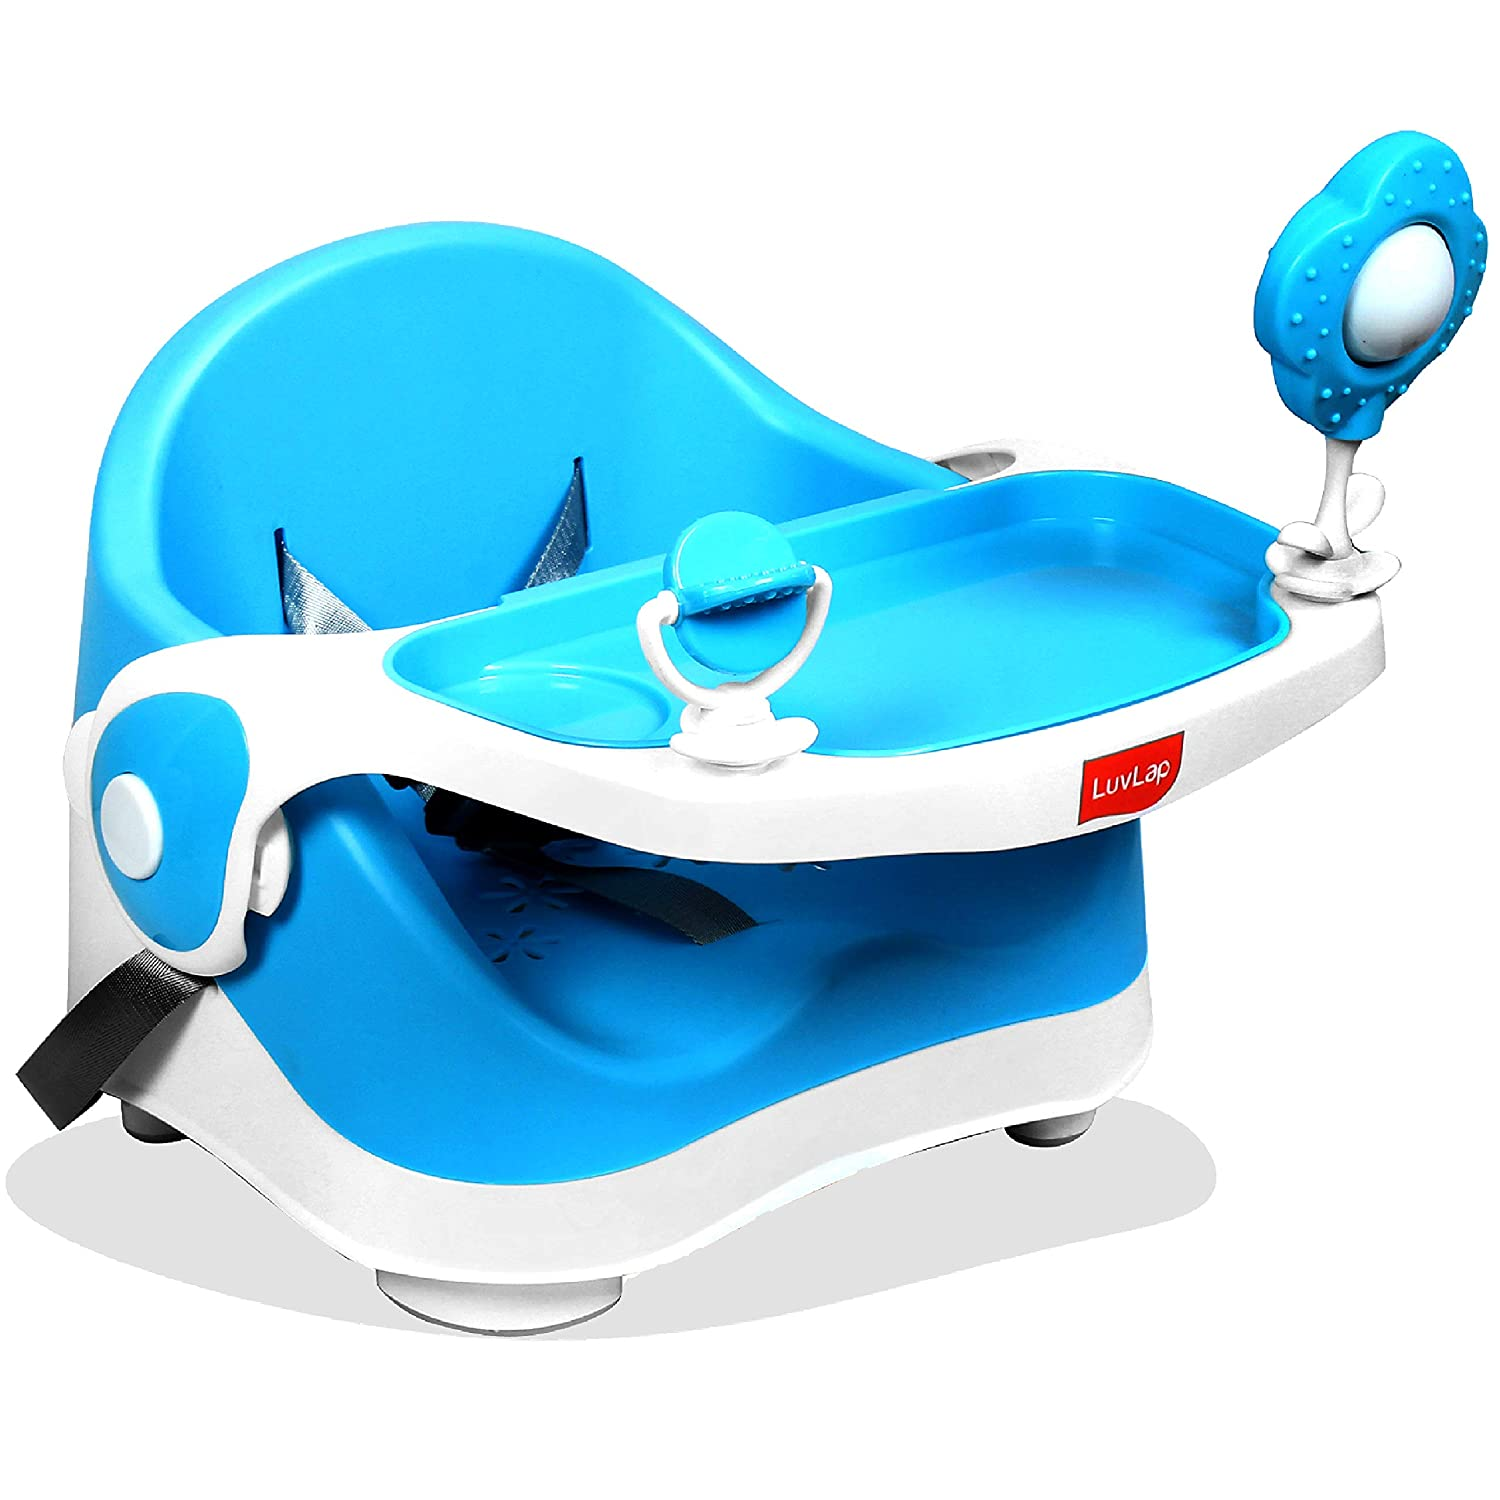 LuvLap Springdale 2 in 1 Feeding Chair & Booster Seat, Portable (Blue)